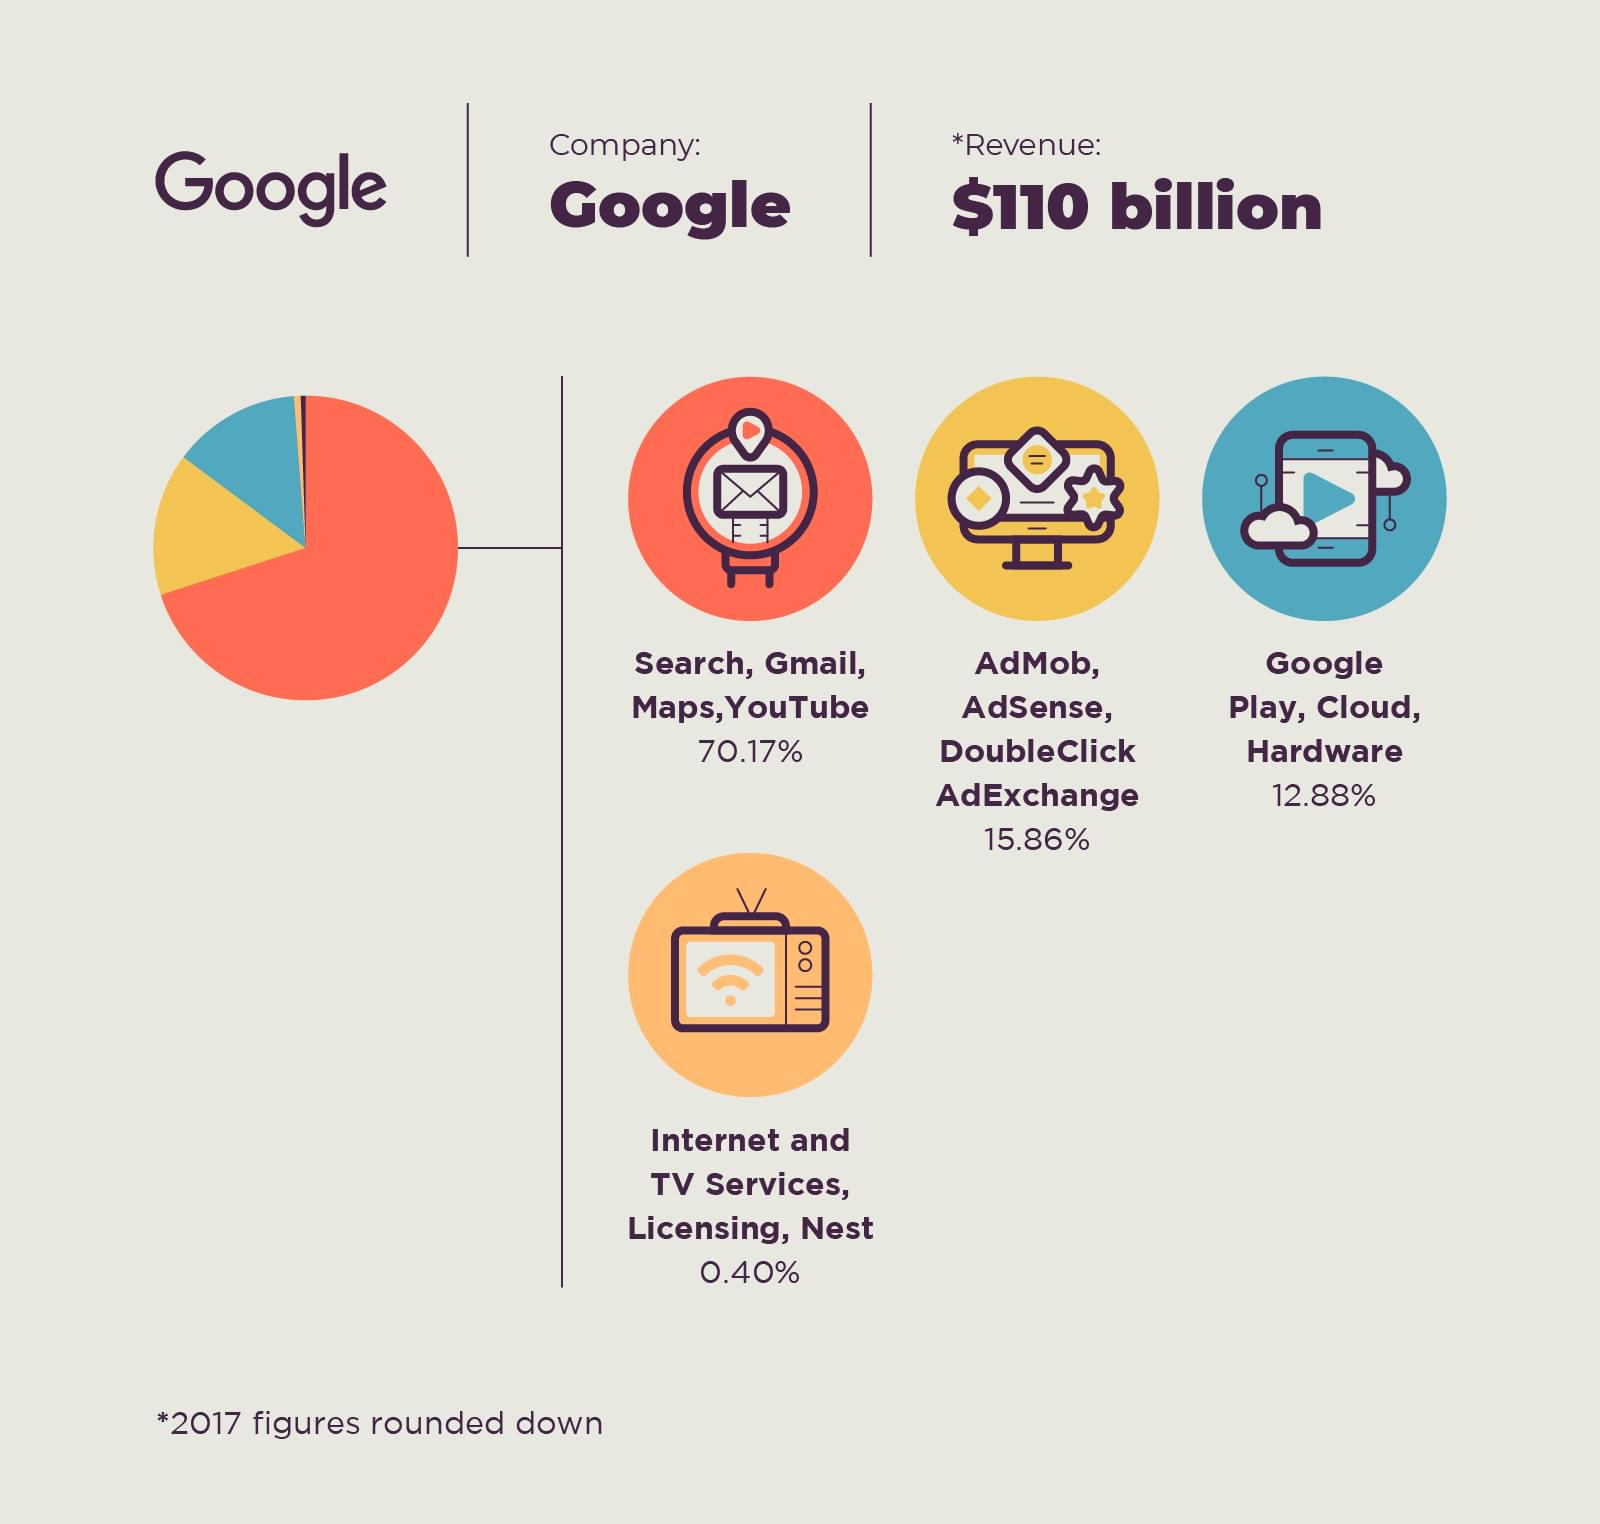 Revenue breakdown of Alphabet's Google